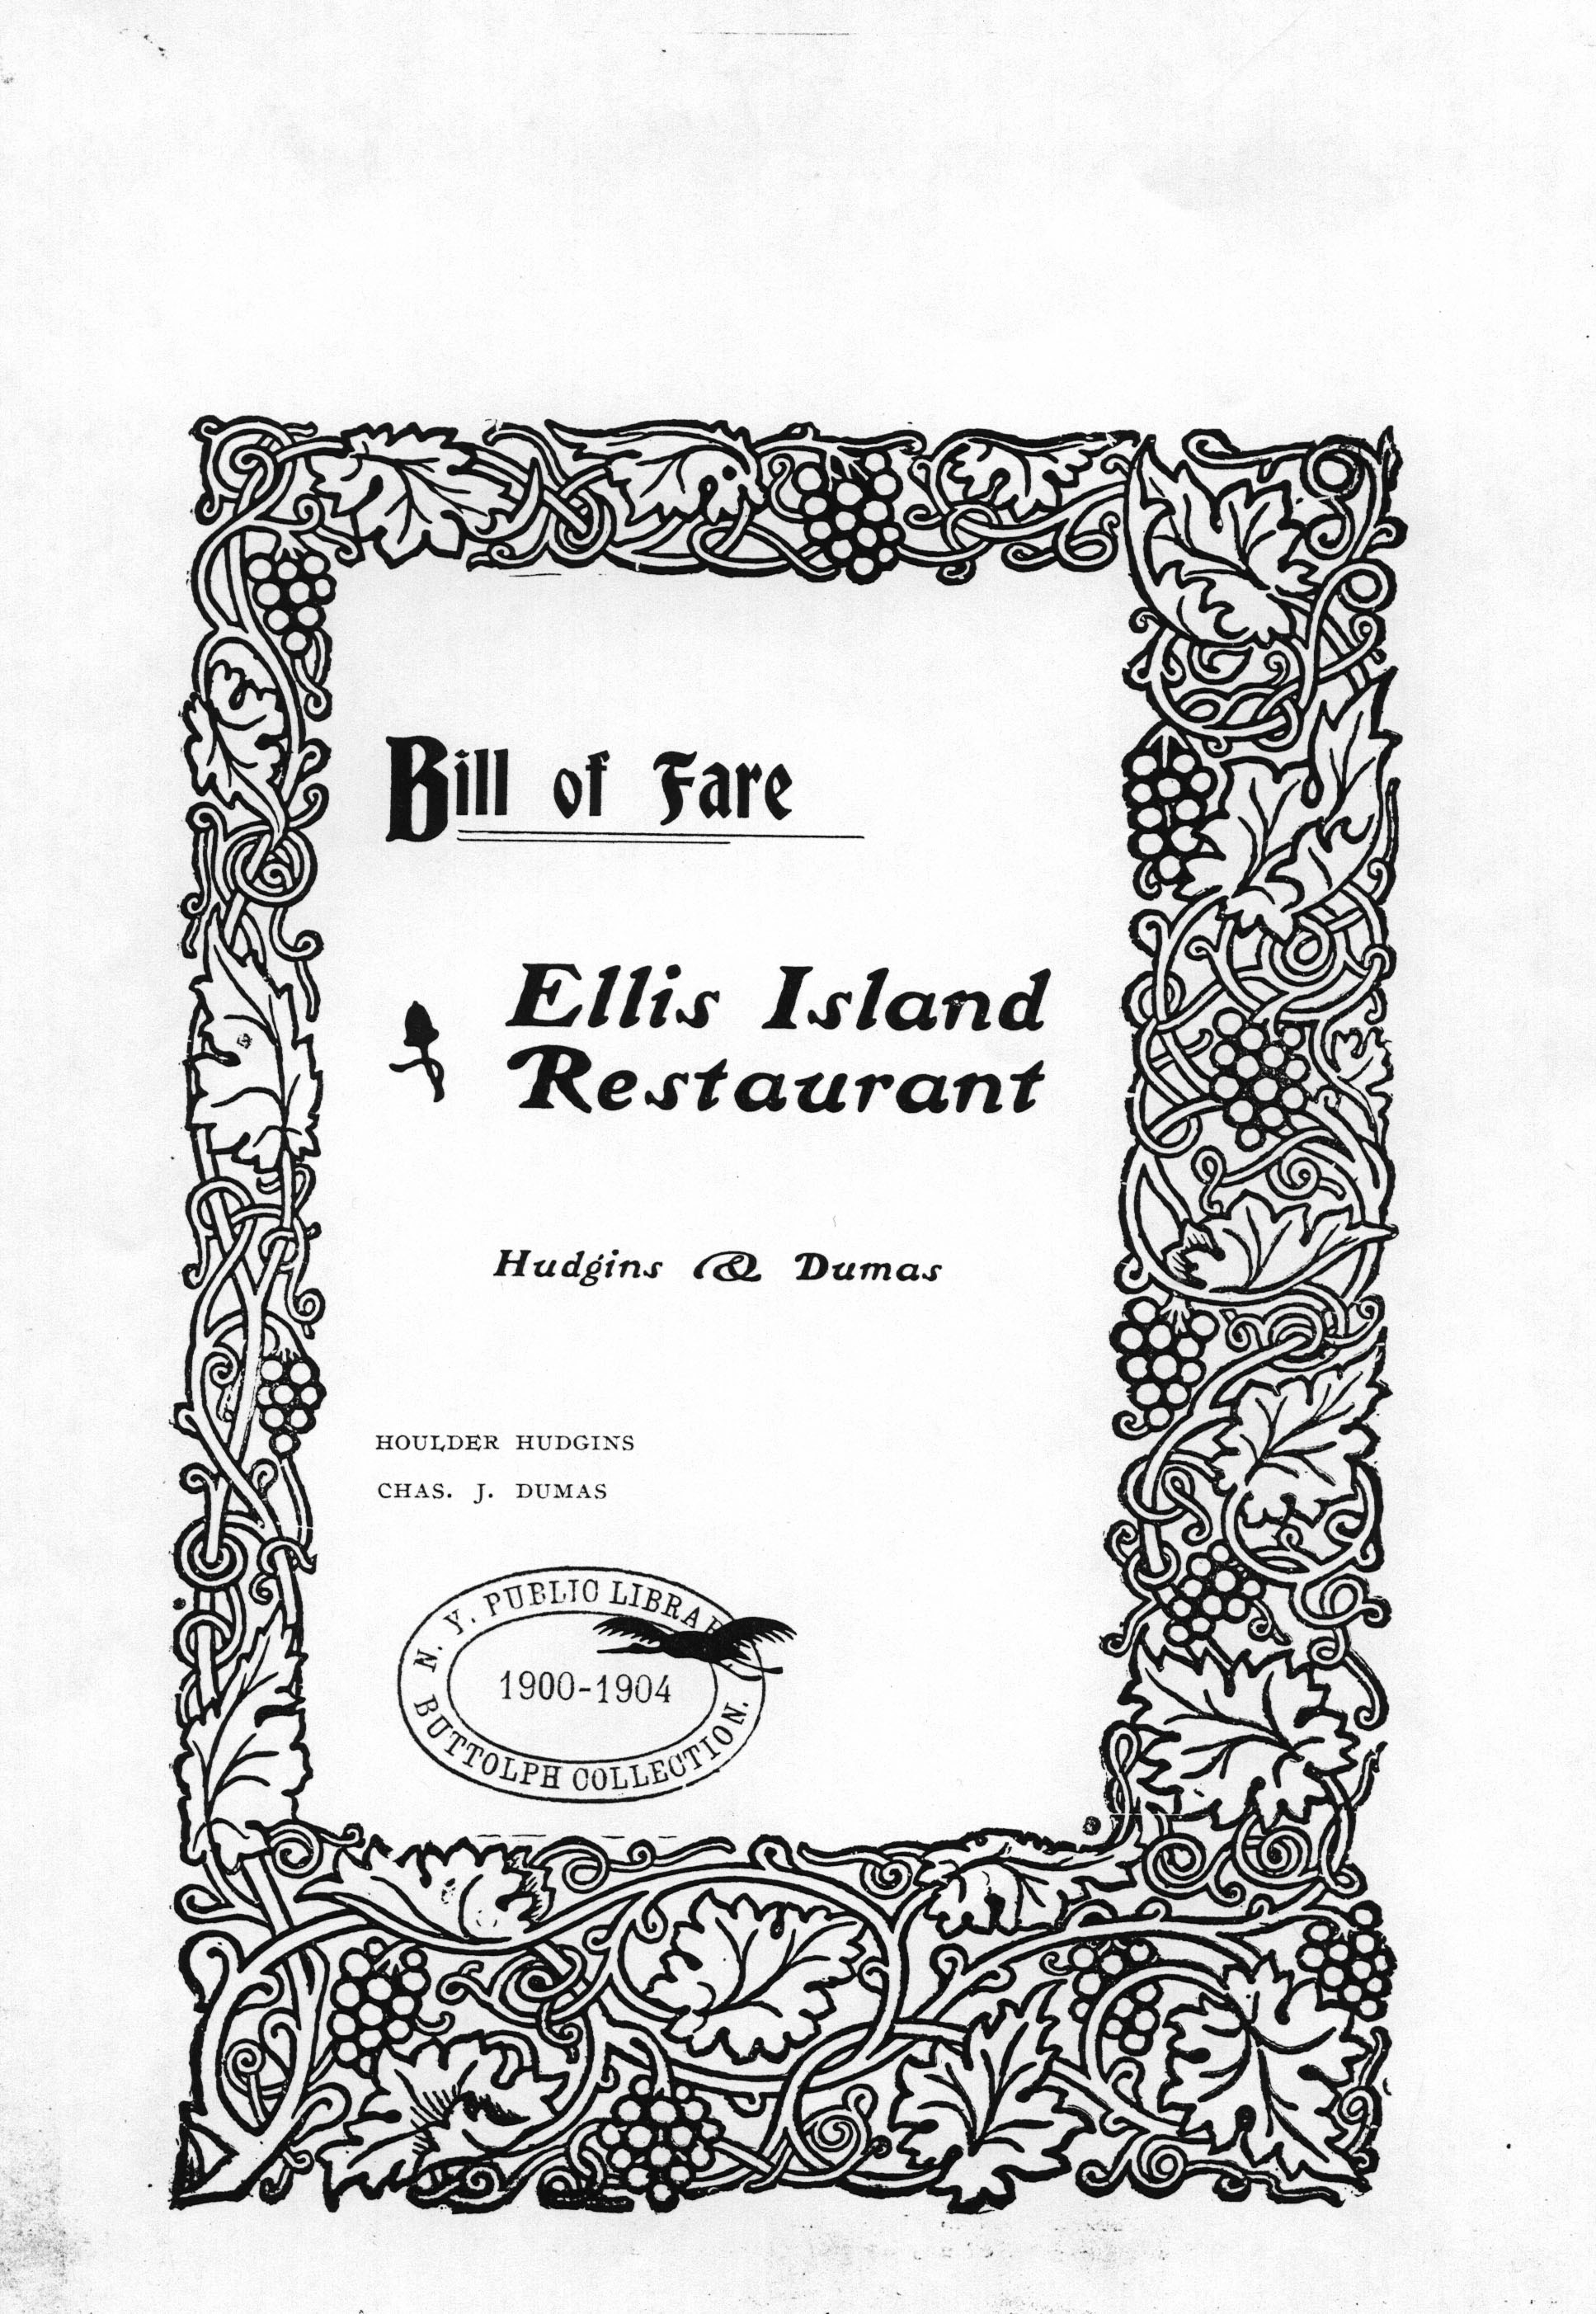 20120723-Ellis Island Restaurant Bill of fare.jpg